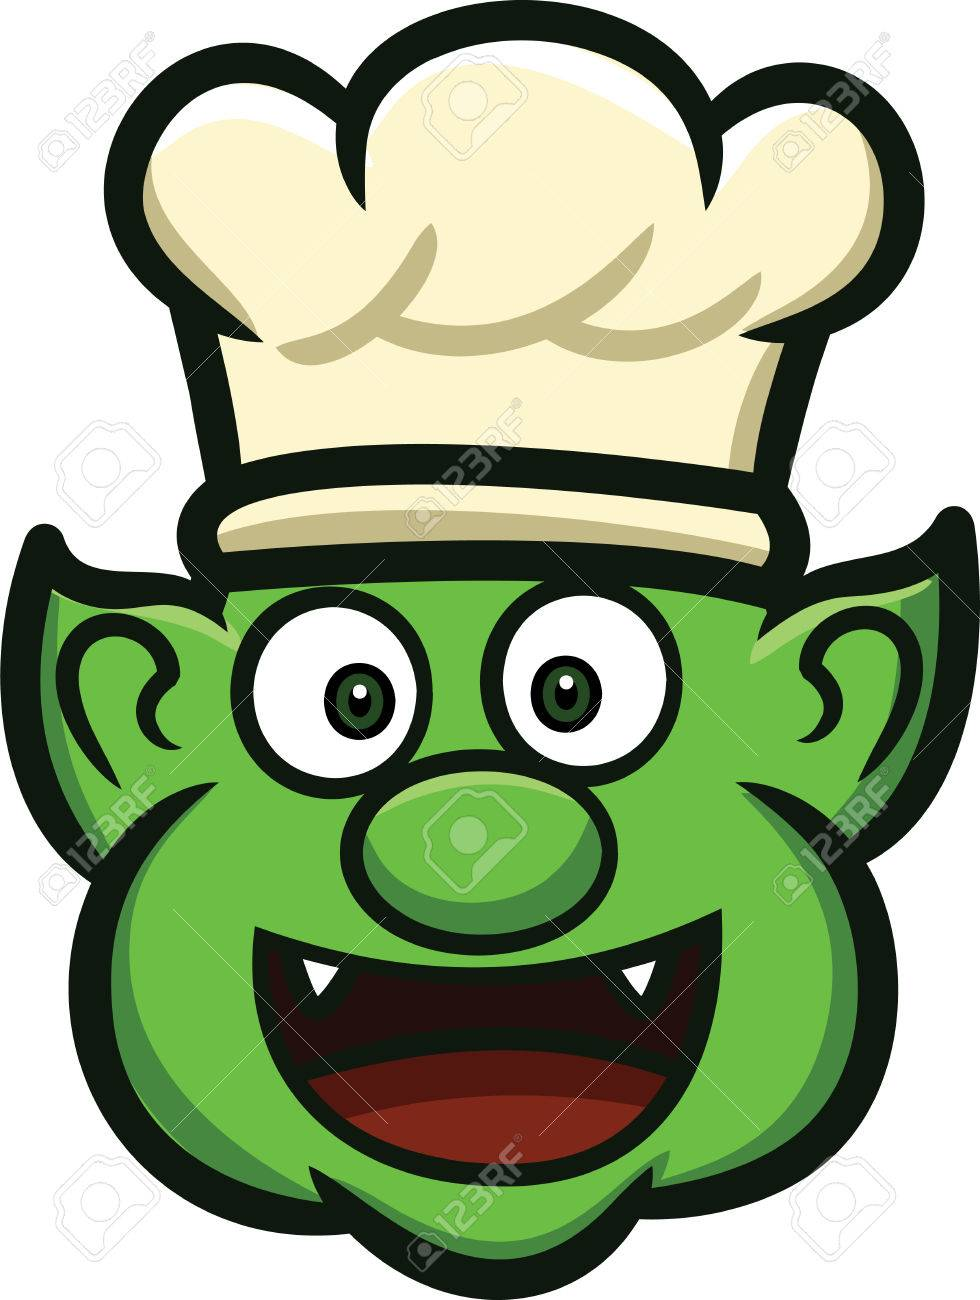 orc chef head cartoon royalty free cliparts vectors and stock rh 123rf com Cute Frog Silhouette Vector The Crocodile